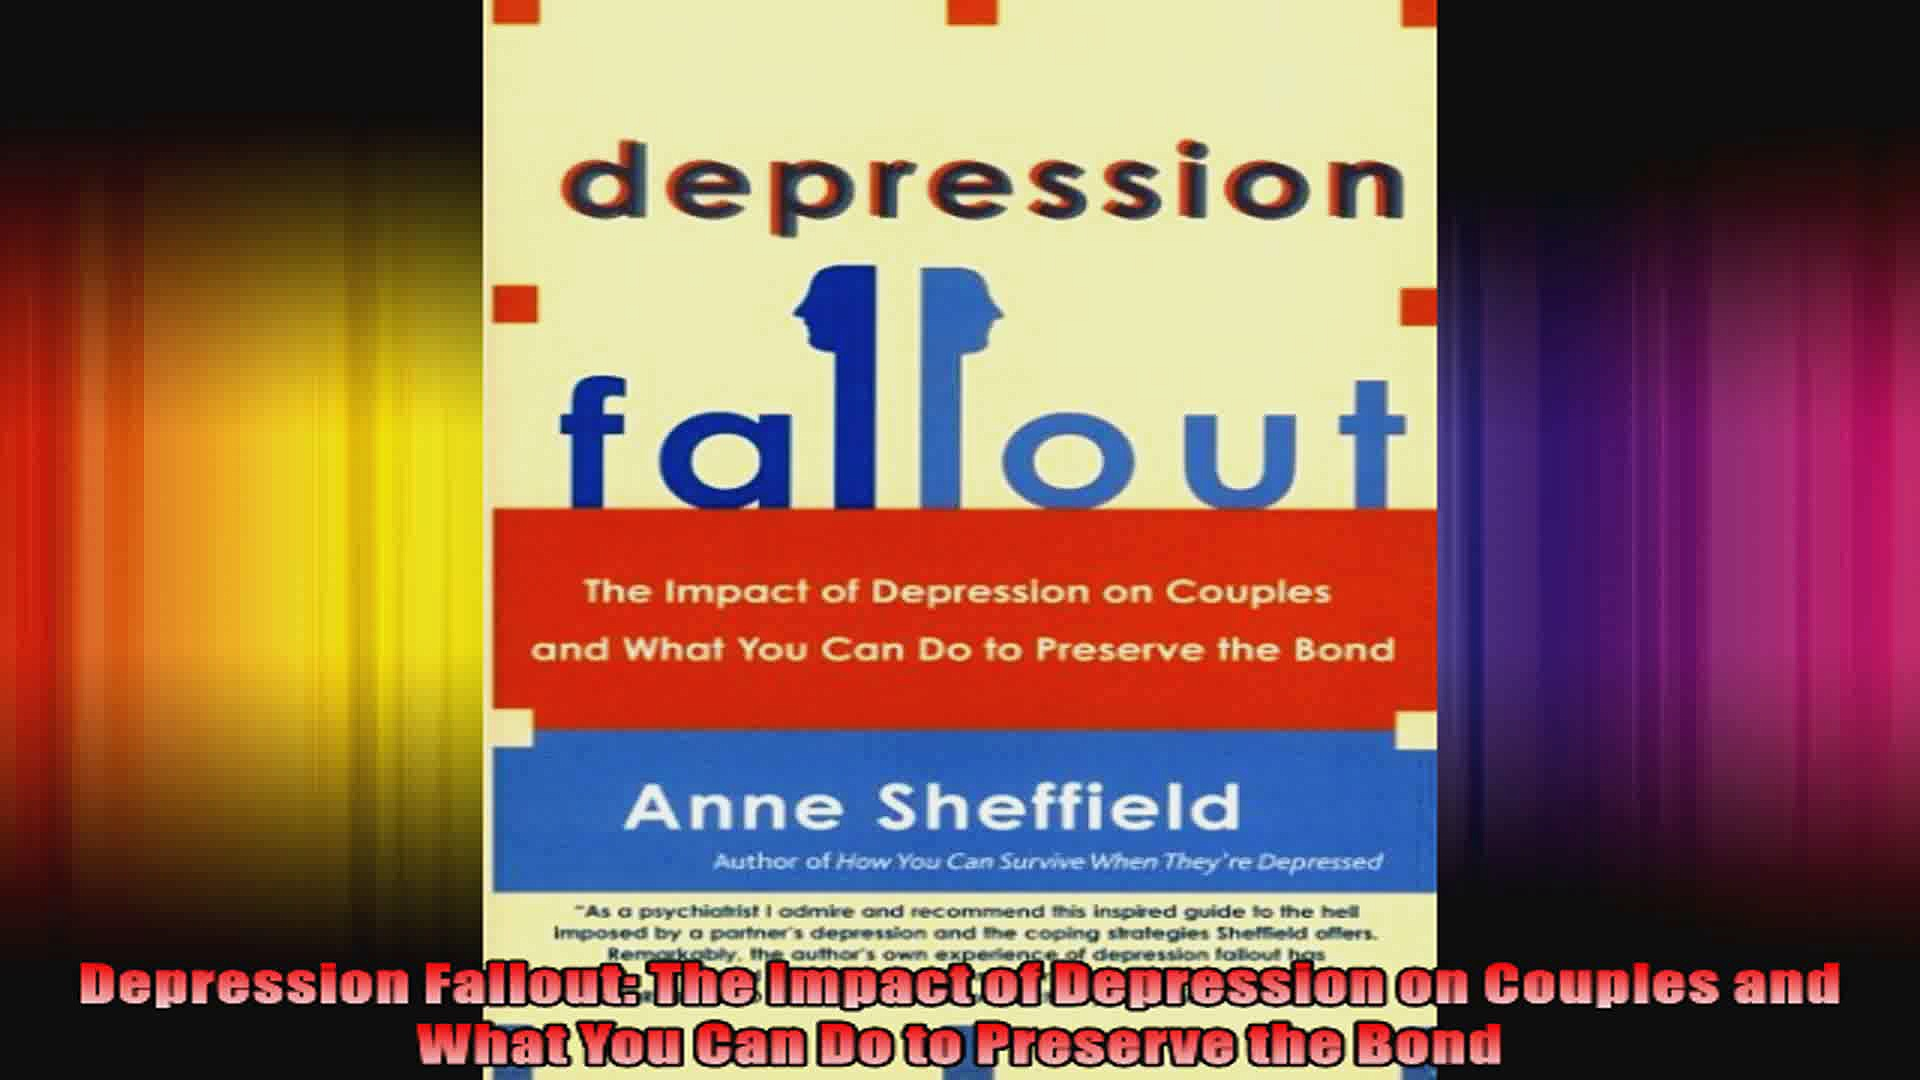 Depression Fallout The Impact of Depression on Couples and What You Can Do to Preserve